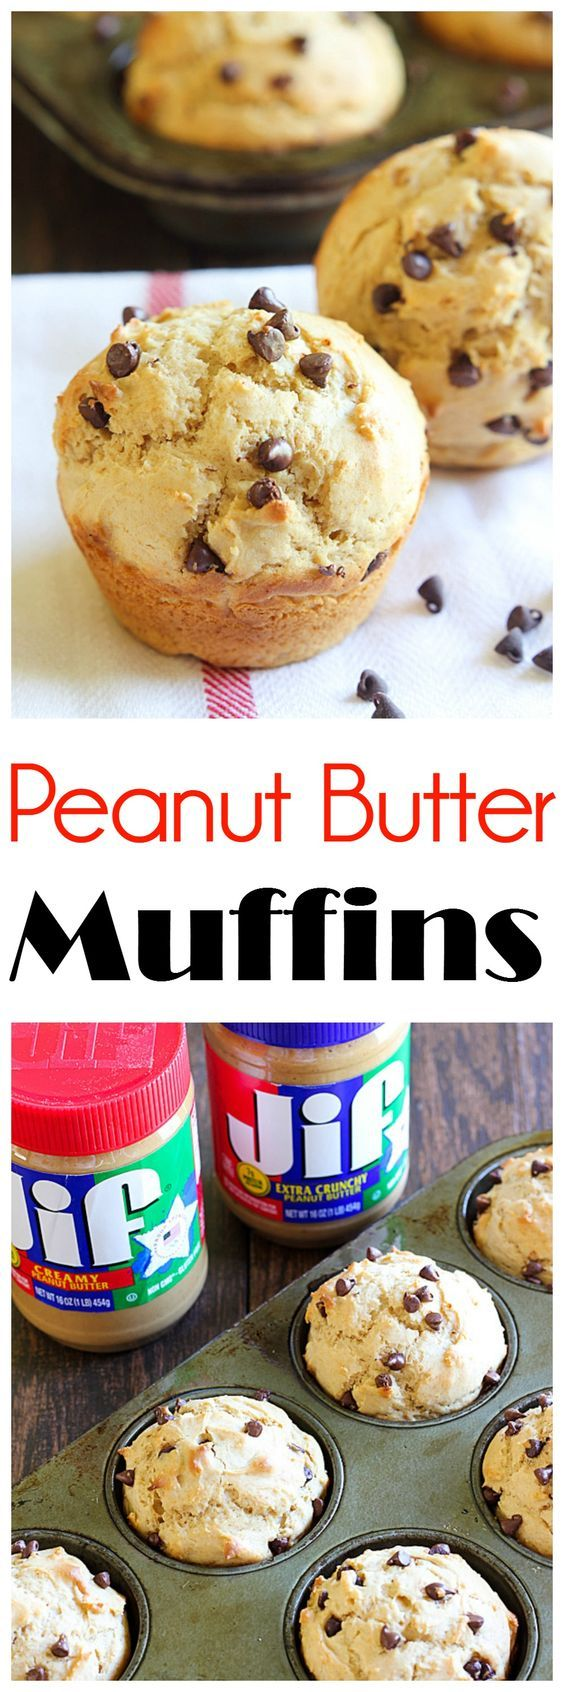 These Peanut Butter Muffins are a great breakfast or snack made with Jif peanut butter to give them delicious protein and flavor!